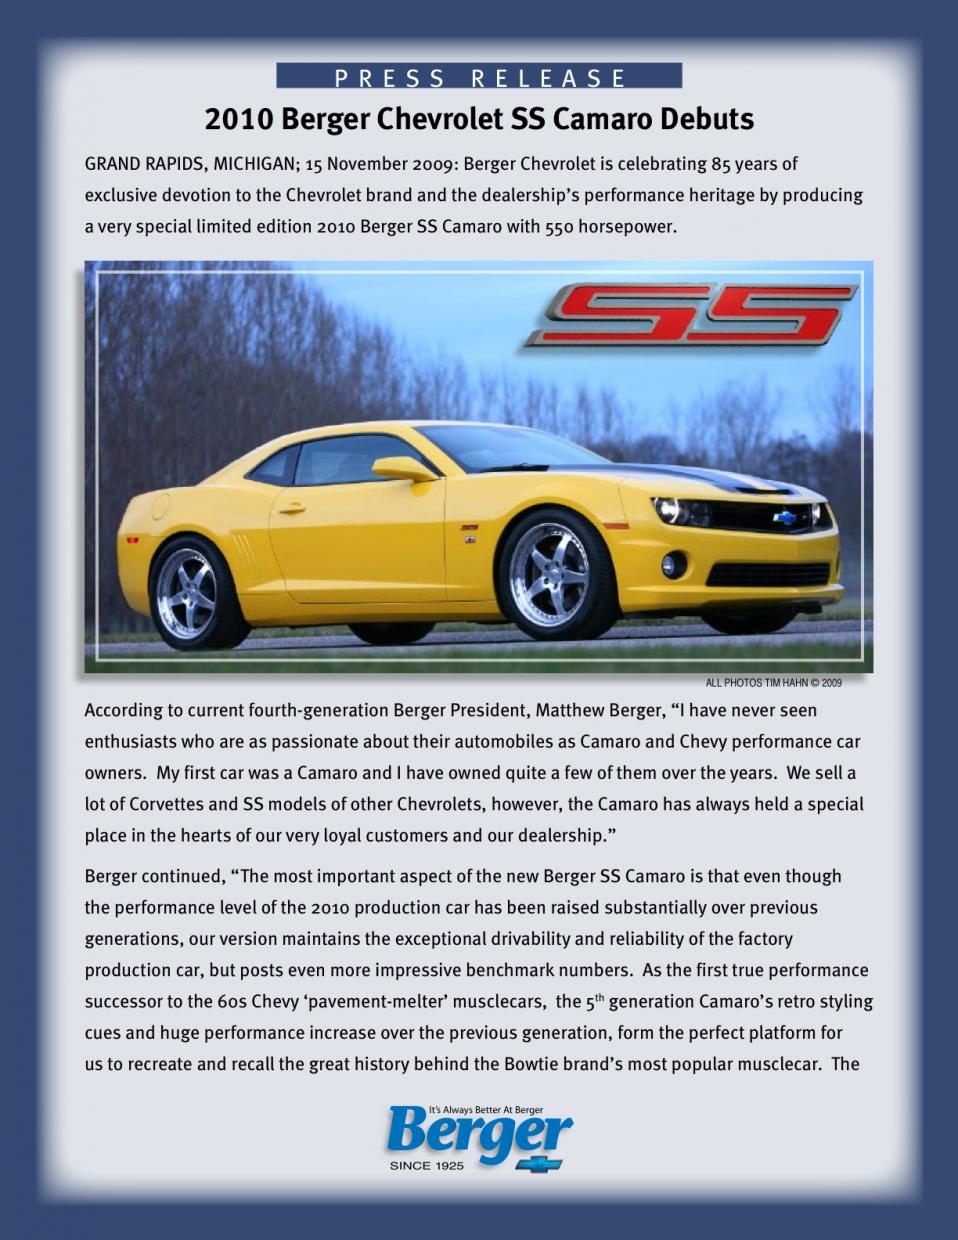 2010 Berger Chevrolet Ss Camaro Official Release